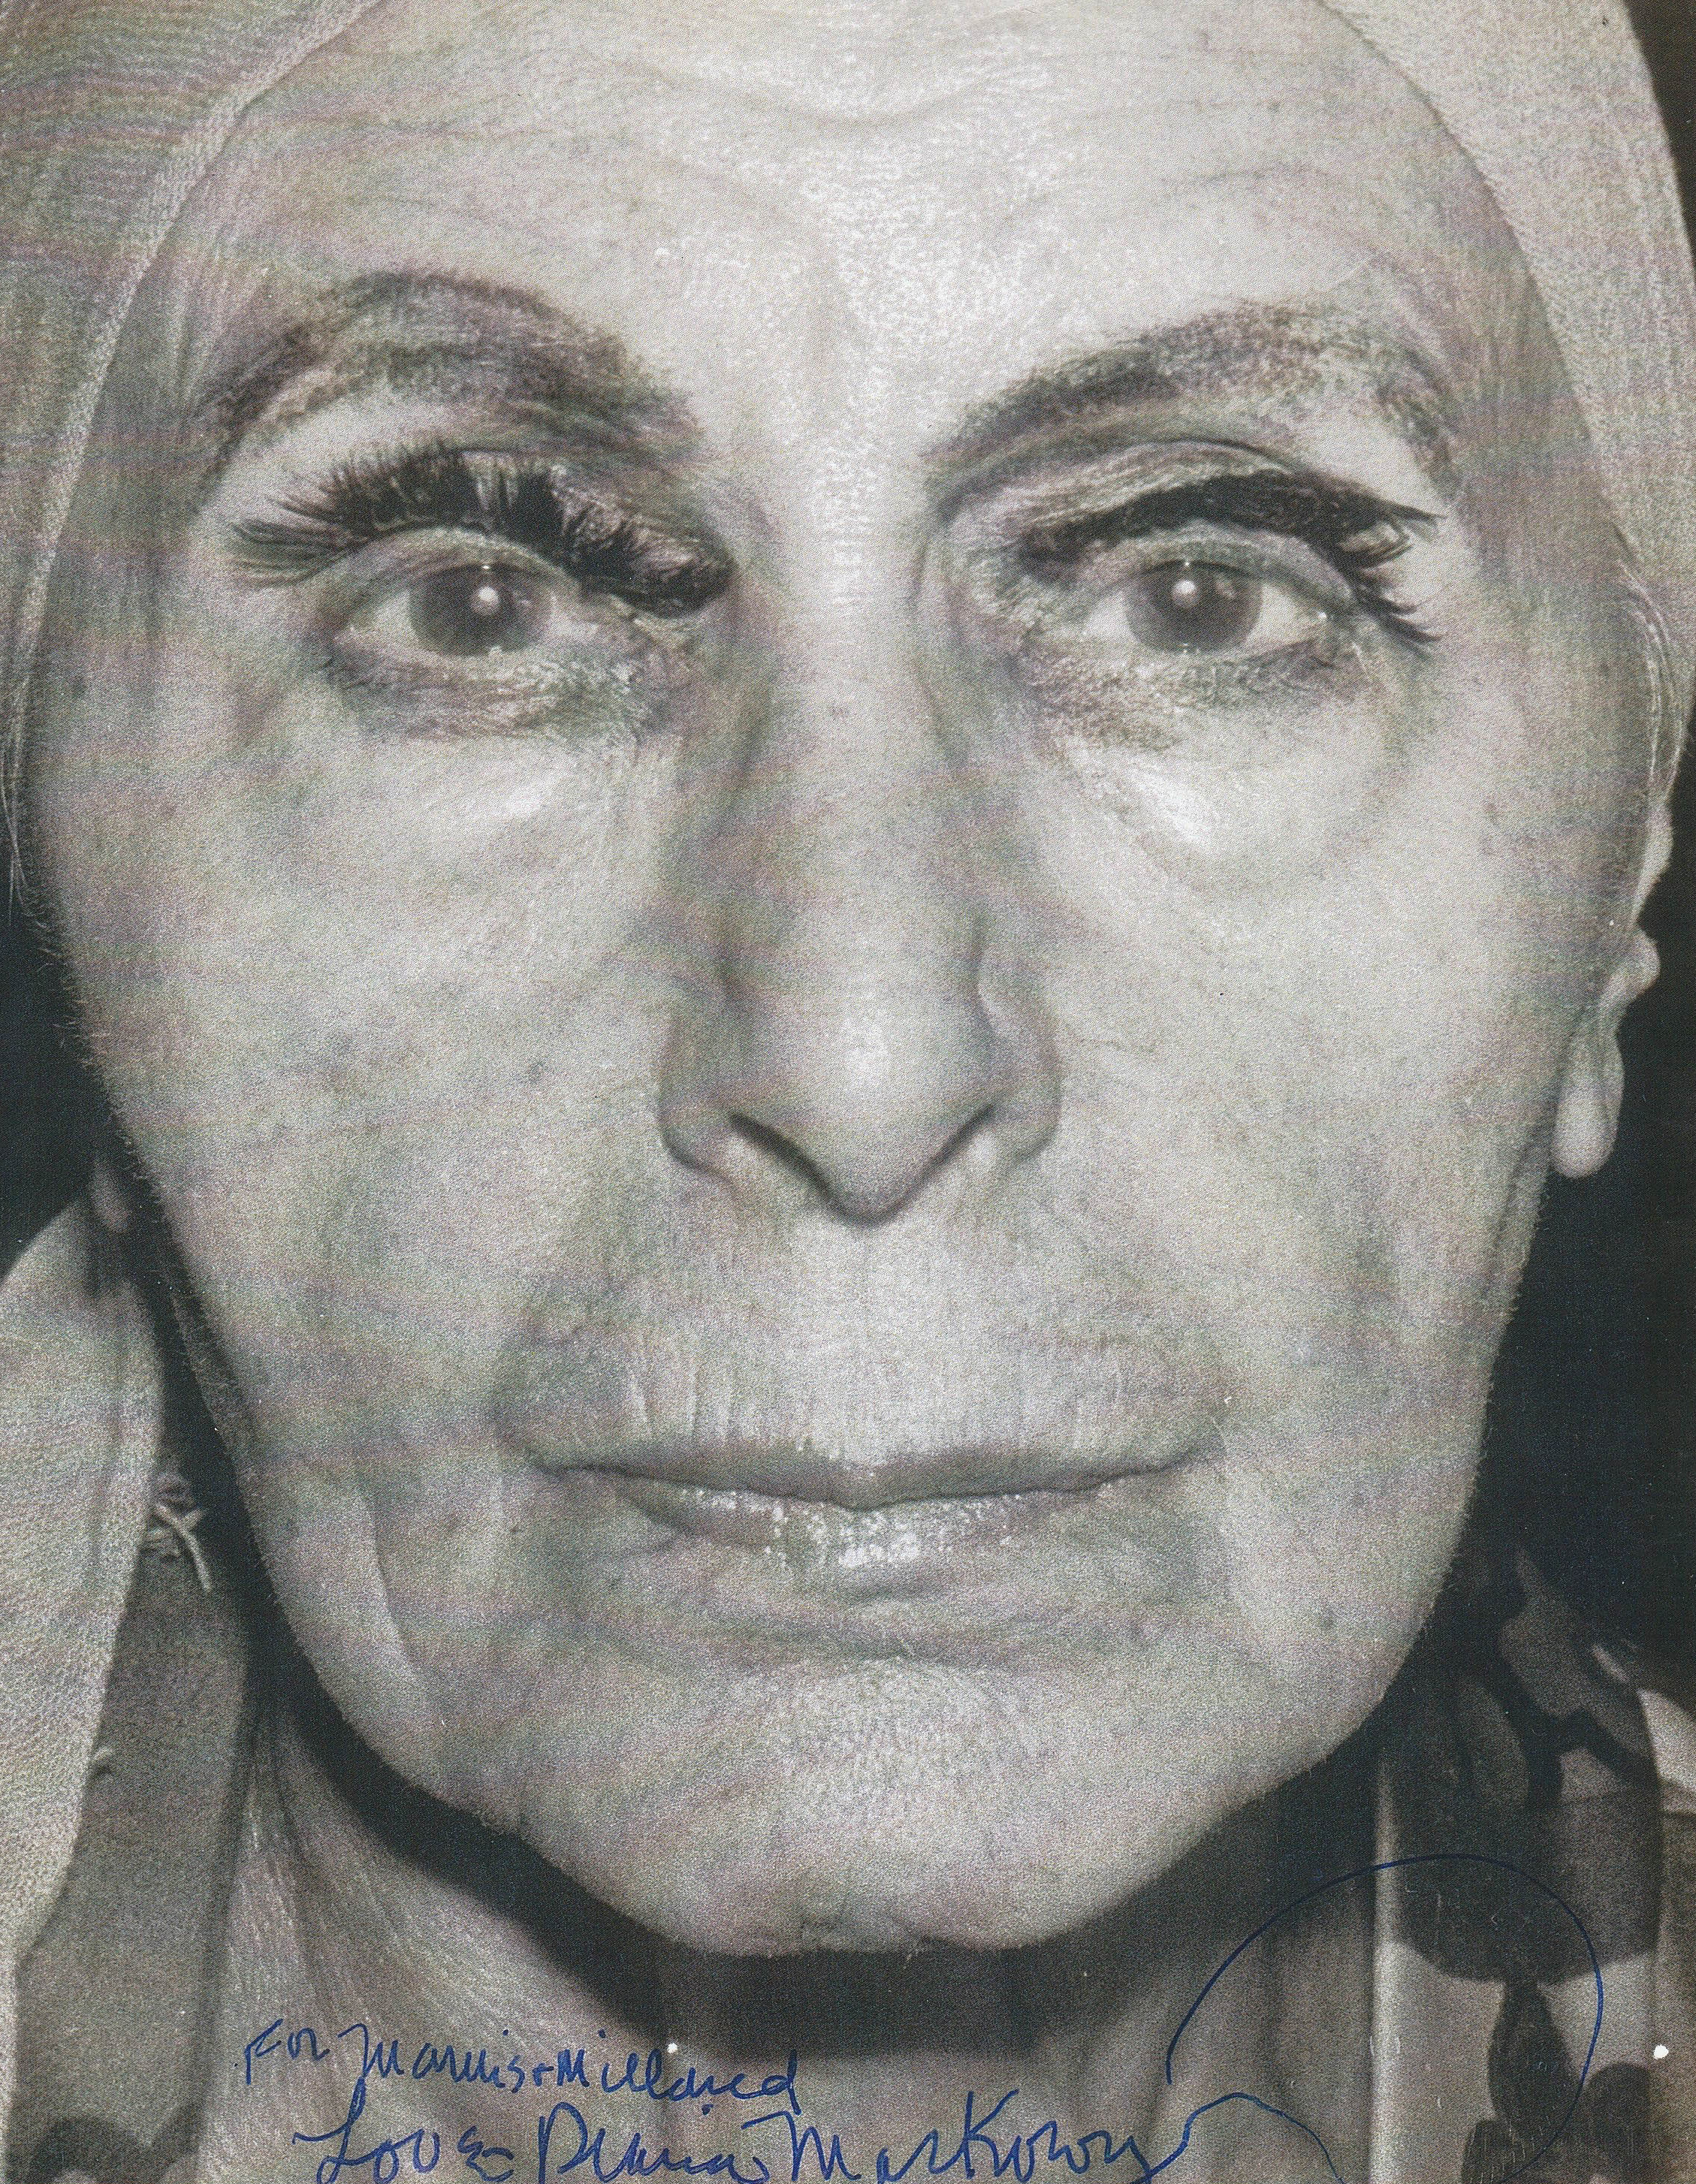 Portrait of Louise Nevelson taken by Diana MacKown (b. 1936) in 1986. Image courtesy of Diana MacKown.